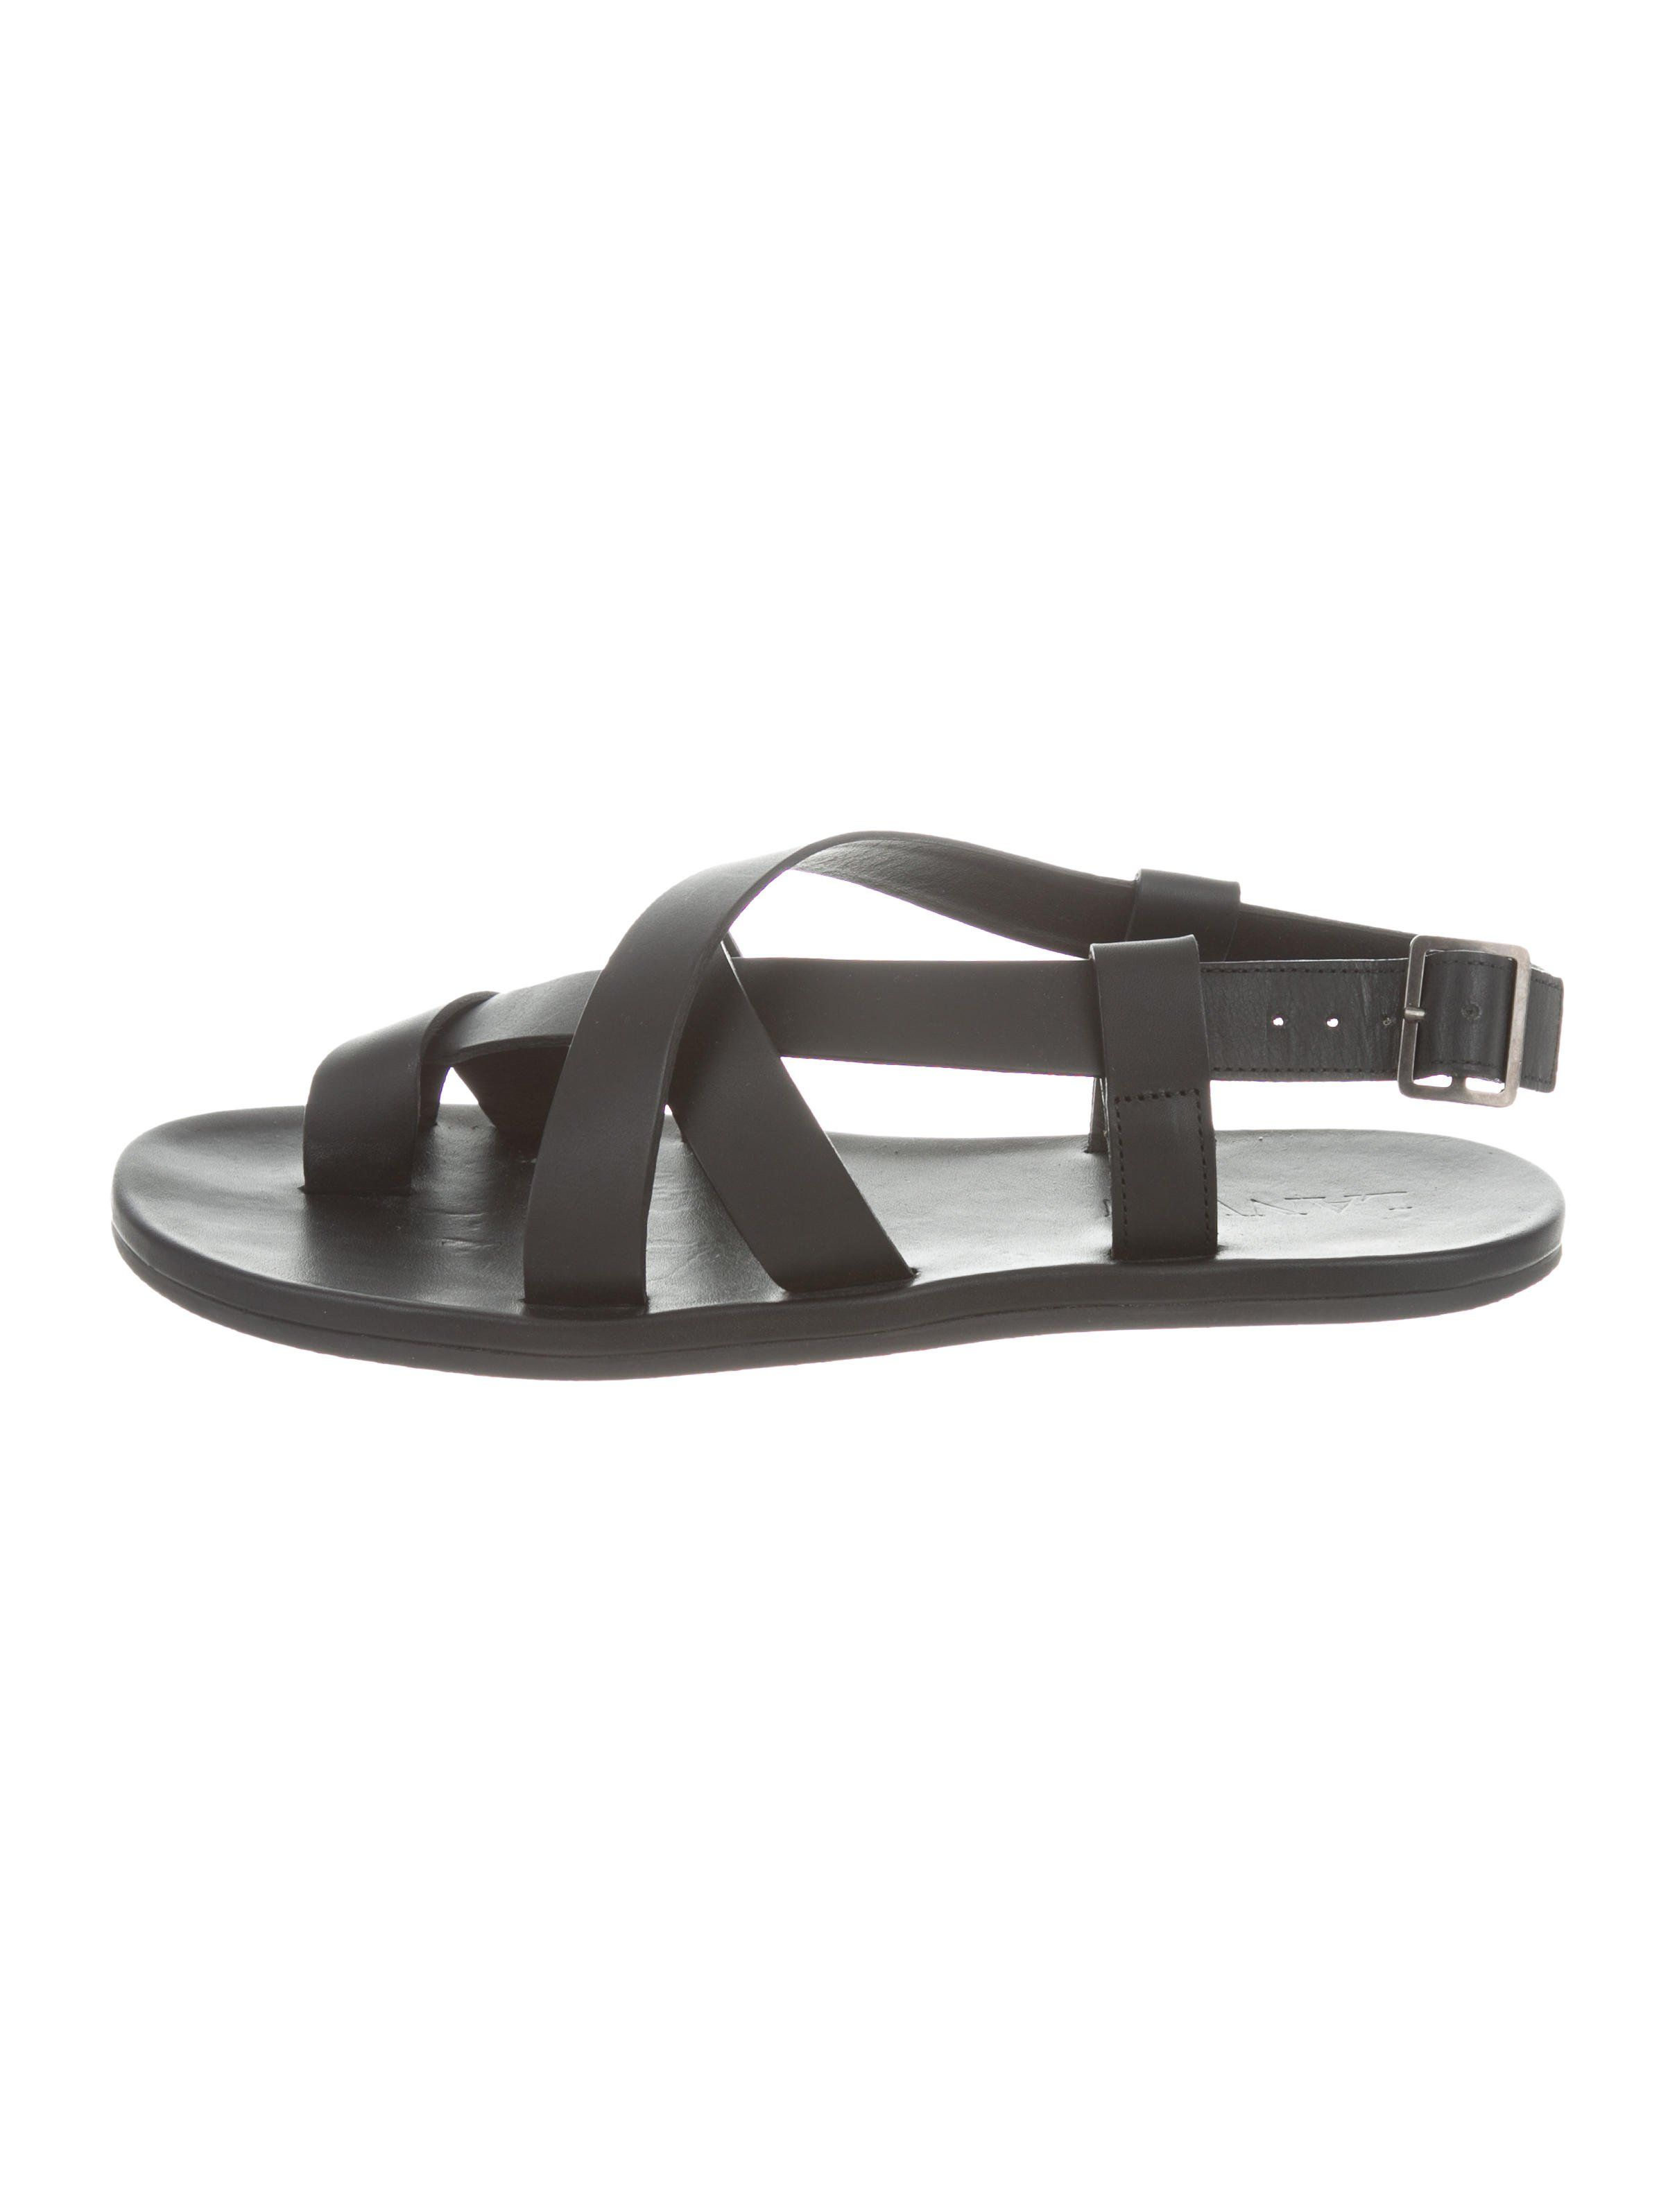 2ca331c9cdf7 Men s black leather Lanvin round-toe sandals with rubber soles and  criss-cross strap buckle closure at counters.Designer Fit  This designer  runs a full size